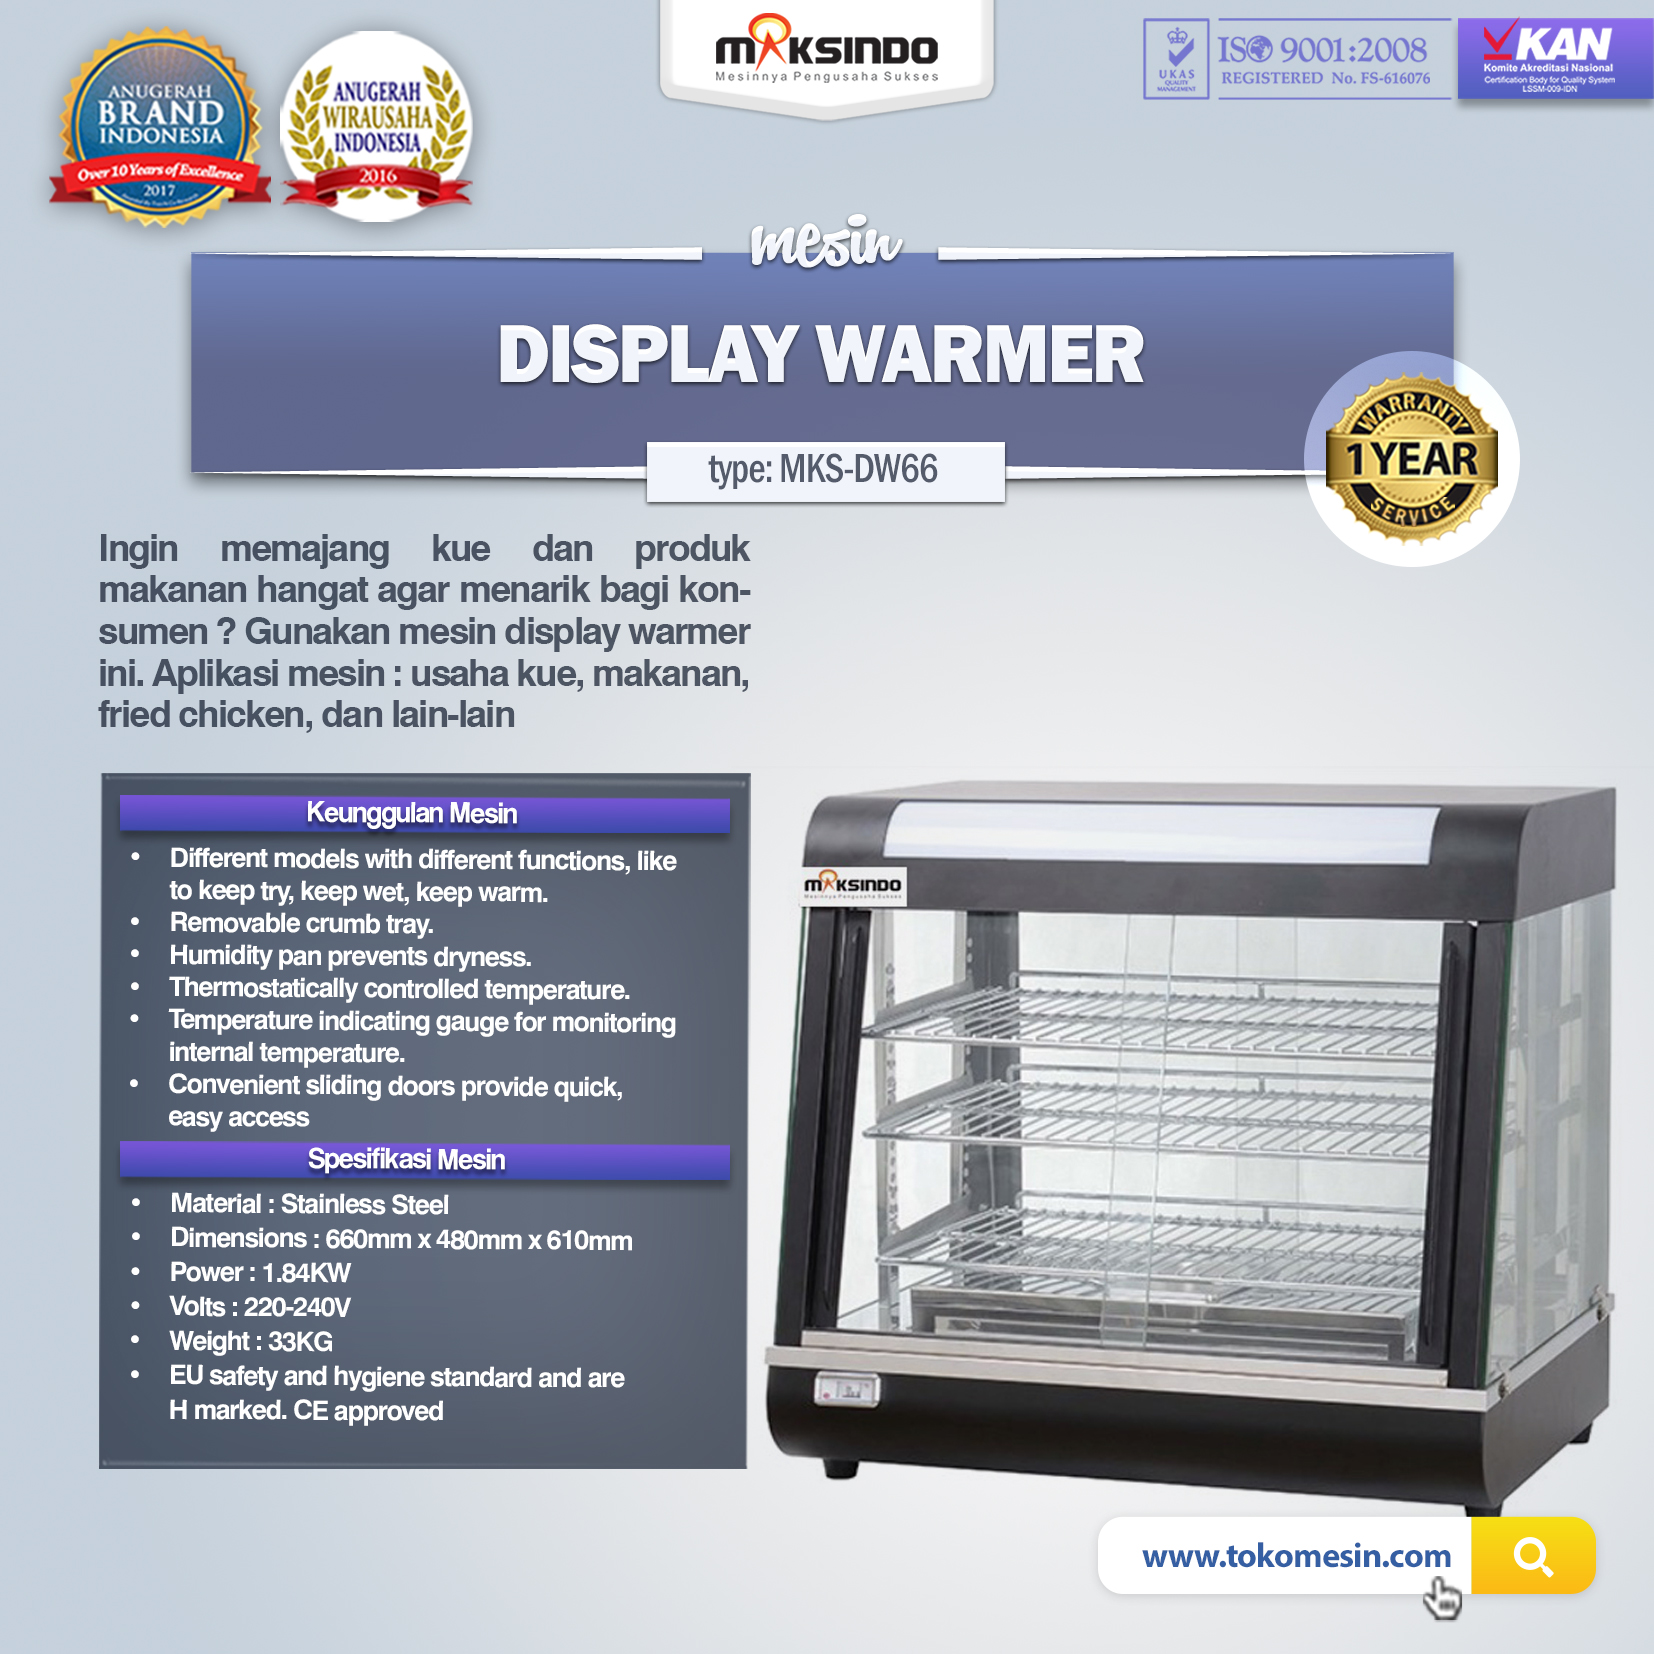 Mesin Display Warmer (MKS-DW66)